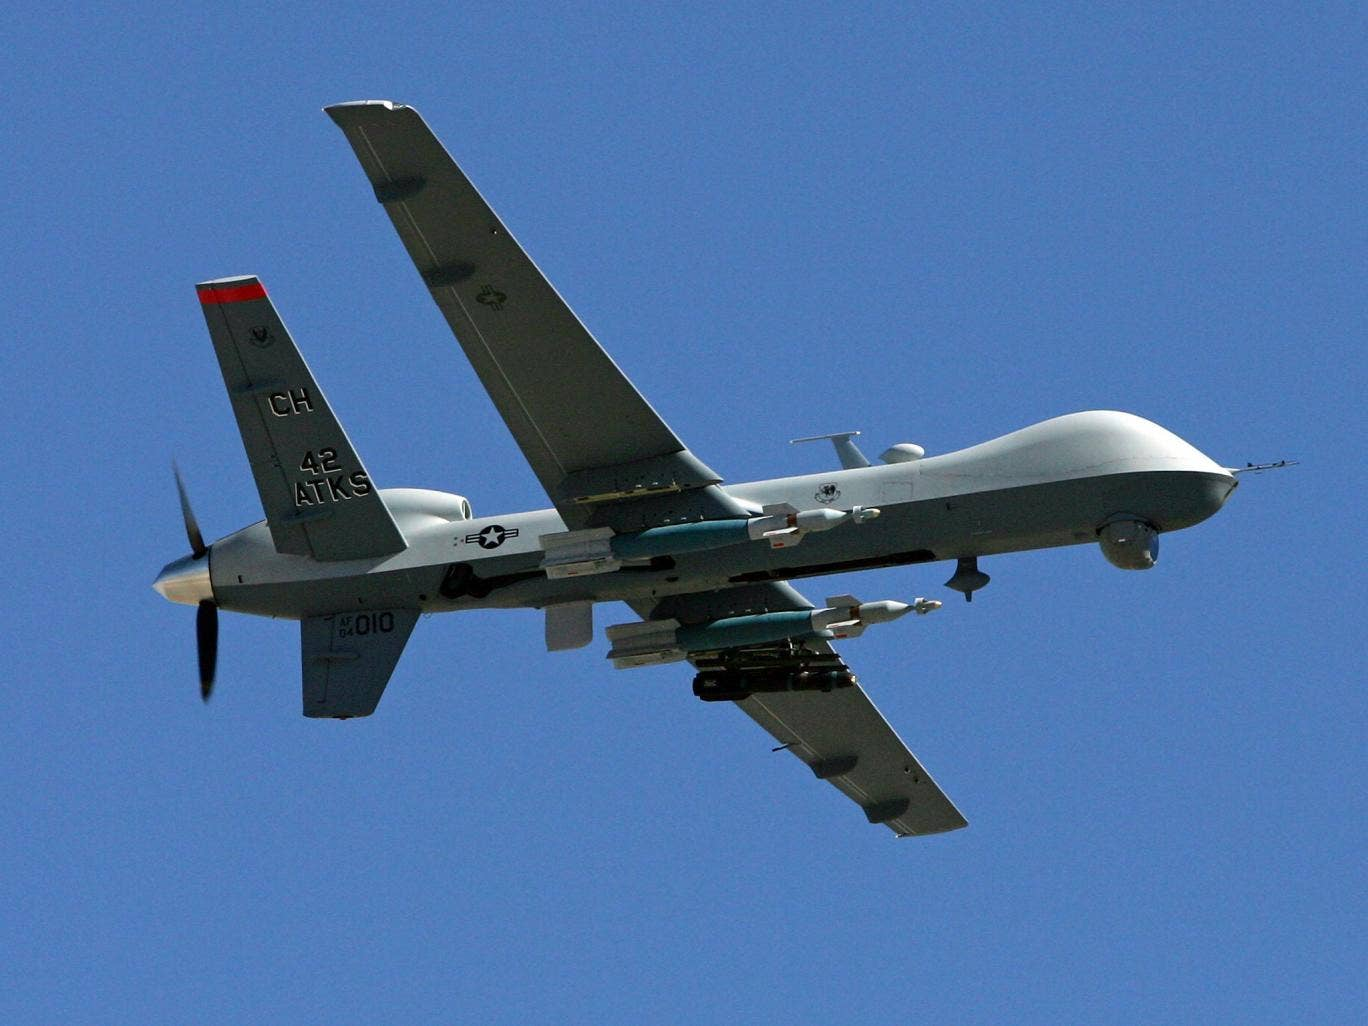 The Afghan president Hamid Karzai said the airstrike was carried out by a drone